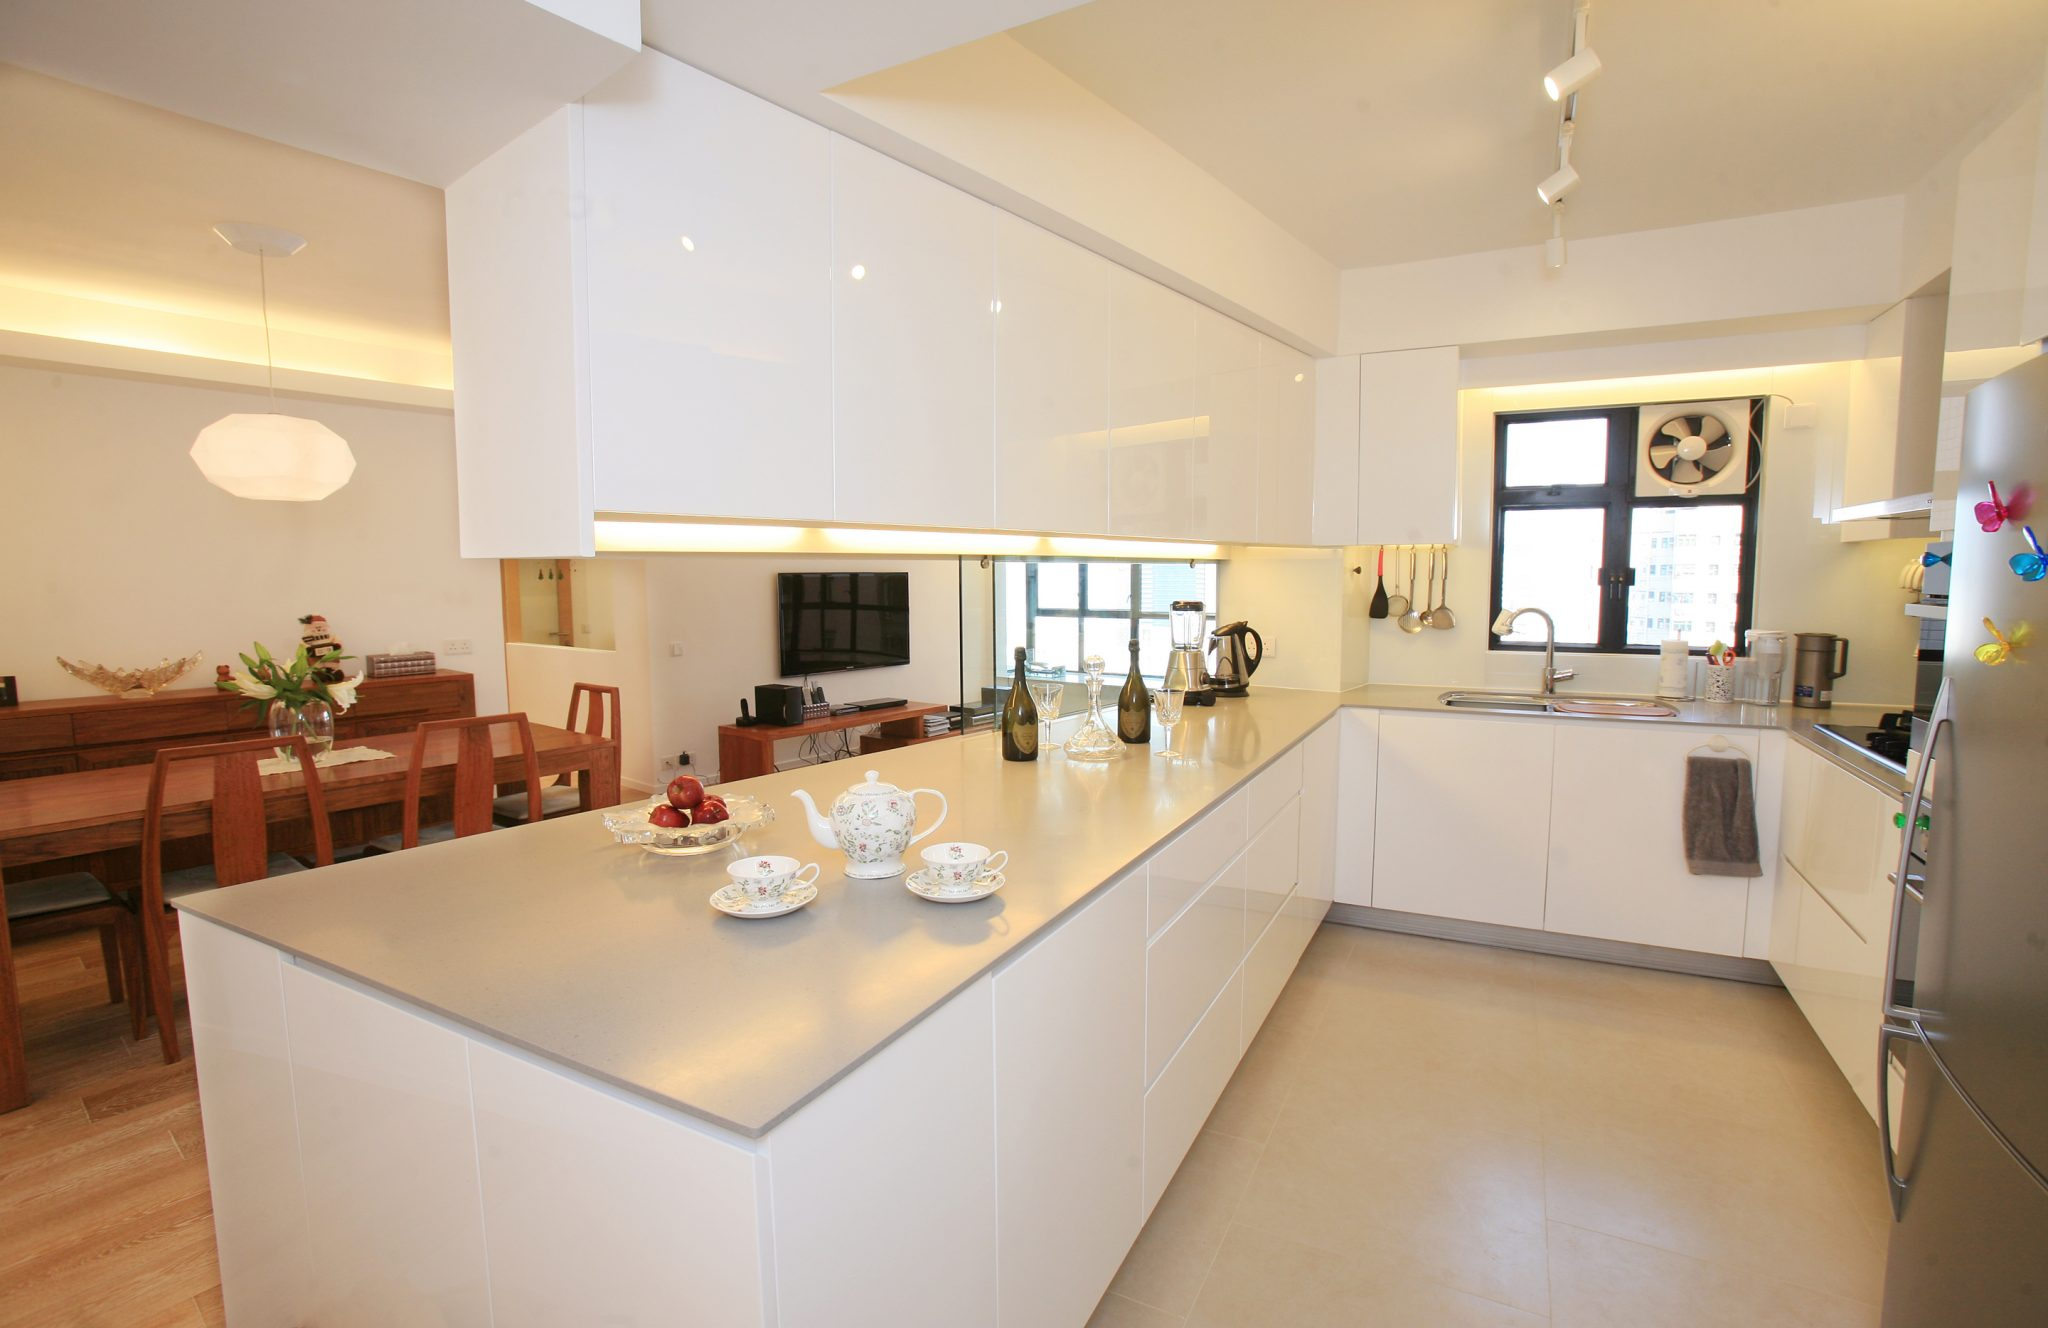 With Emphasis In Ergonomics The Newly Designed Kitchen Not Only Makes Cooking A Great Fun It Also Creates